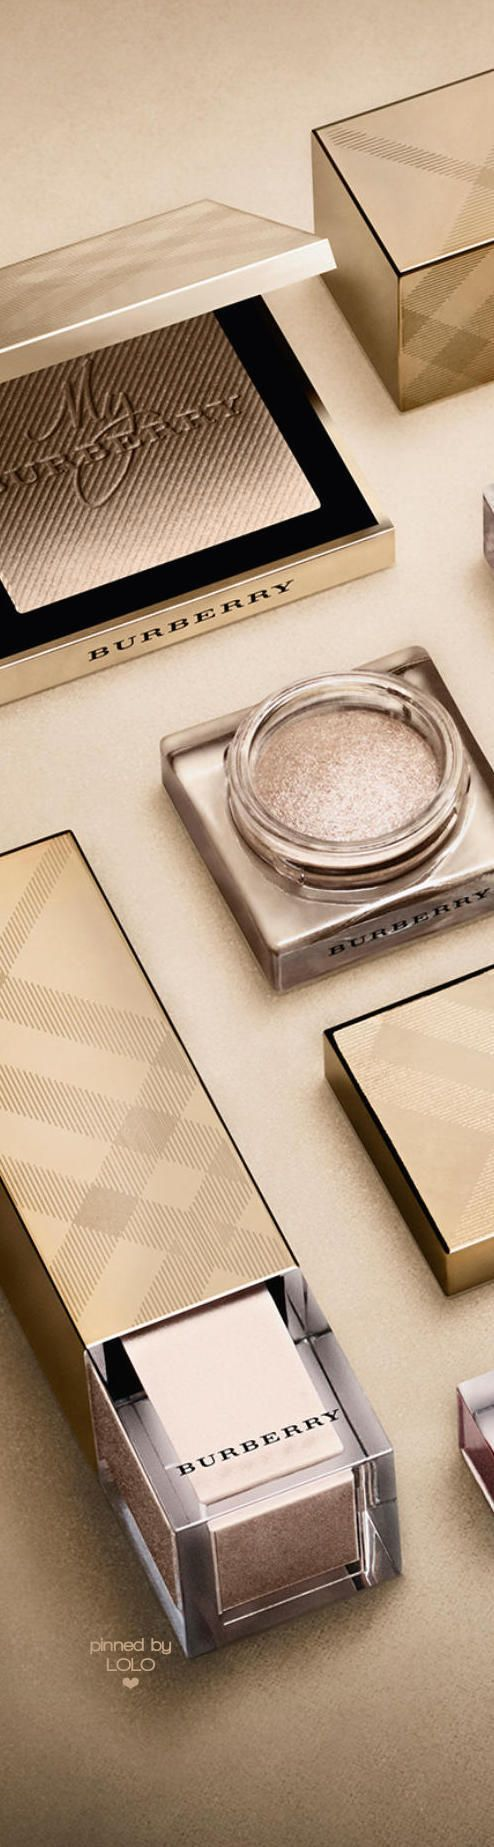 Burberry Makeup Gold | LOLO❤︎